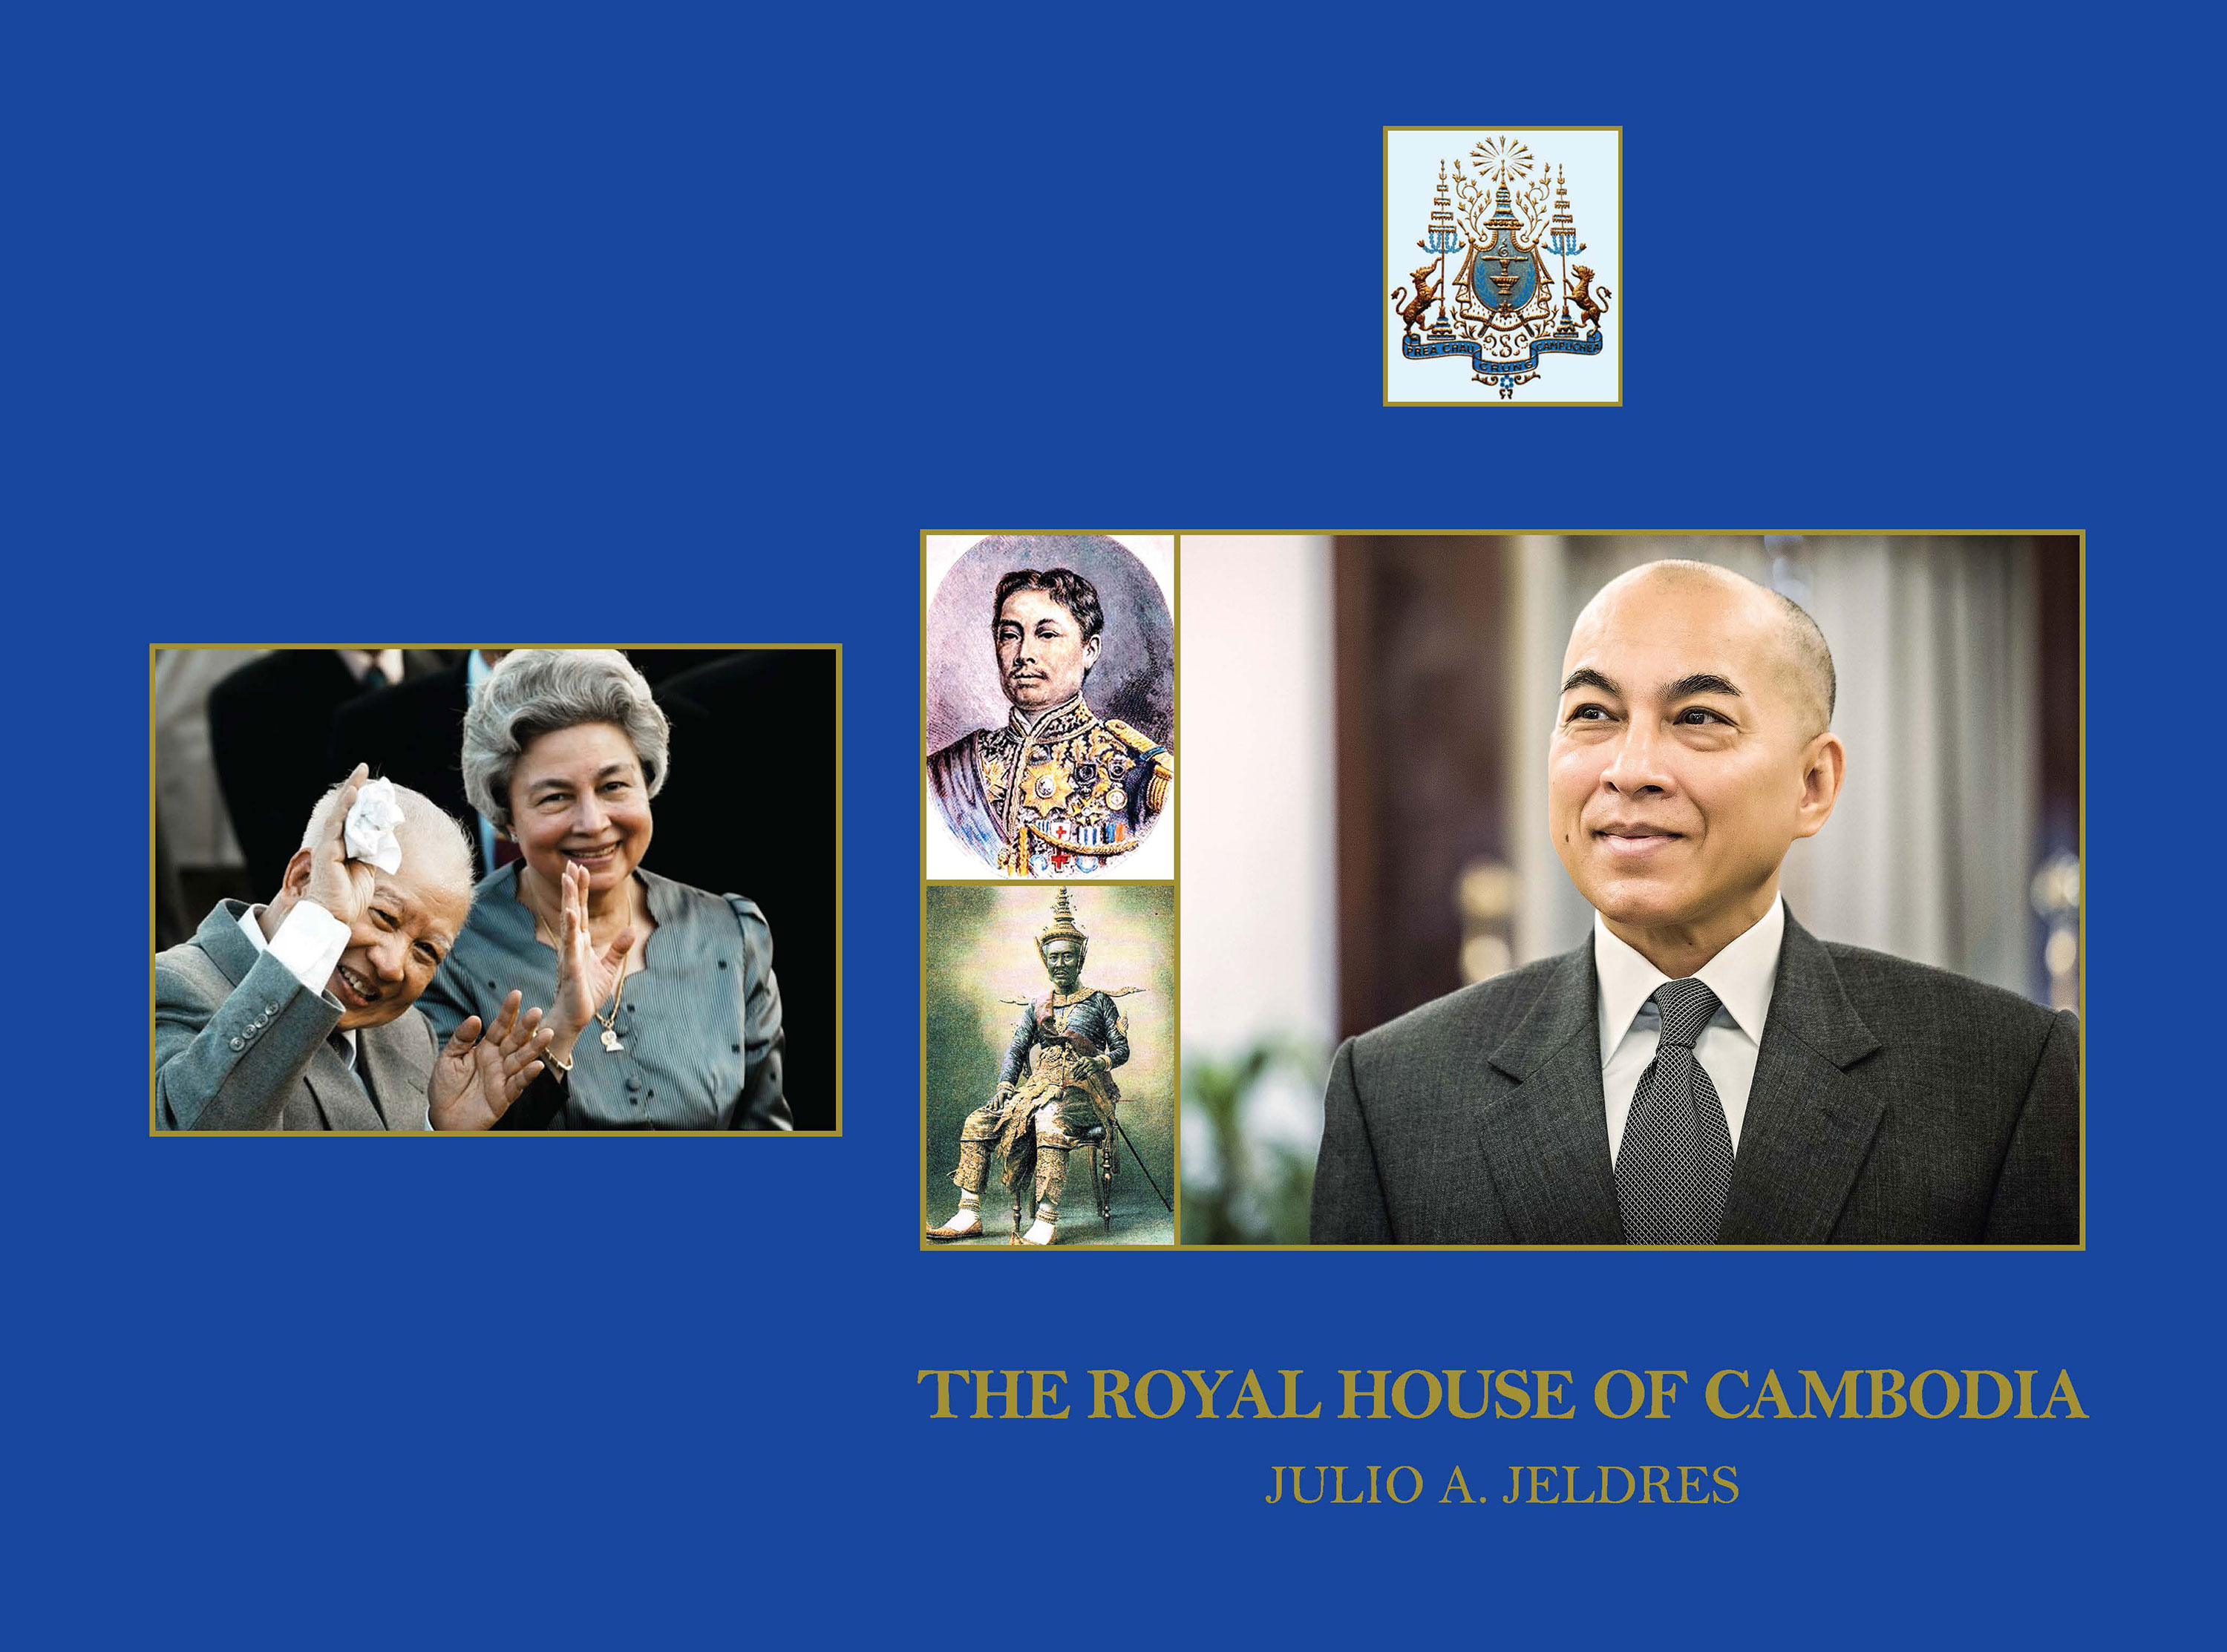 THE ROYAL HOUSE OF CAMBODIA: Ambassador Julio A. Jeldress, PhD